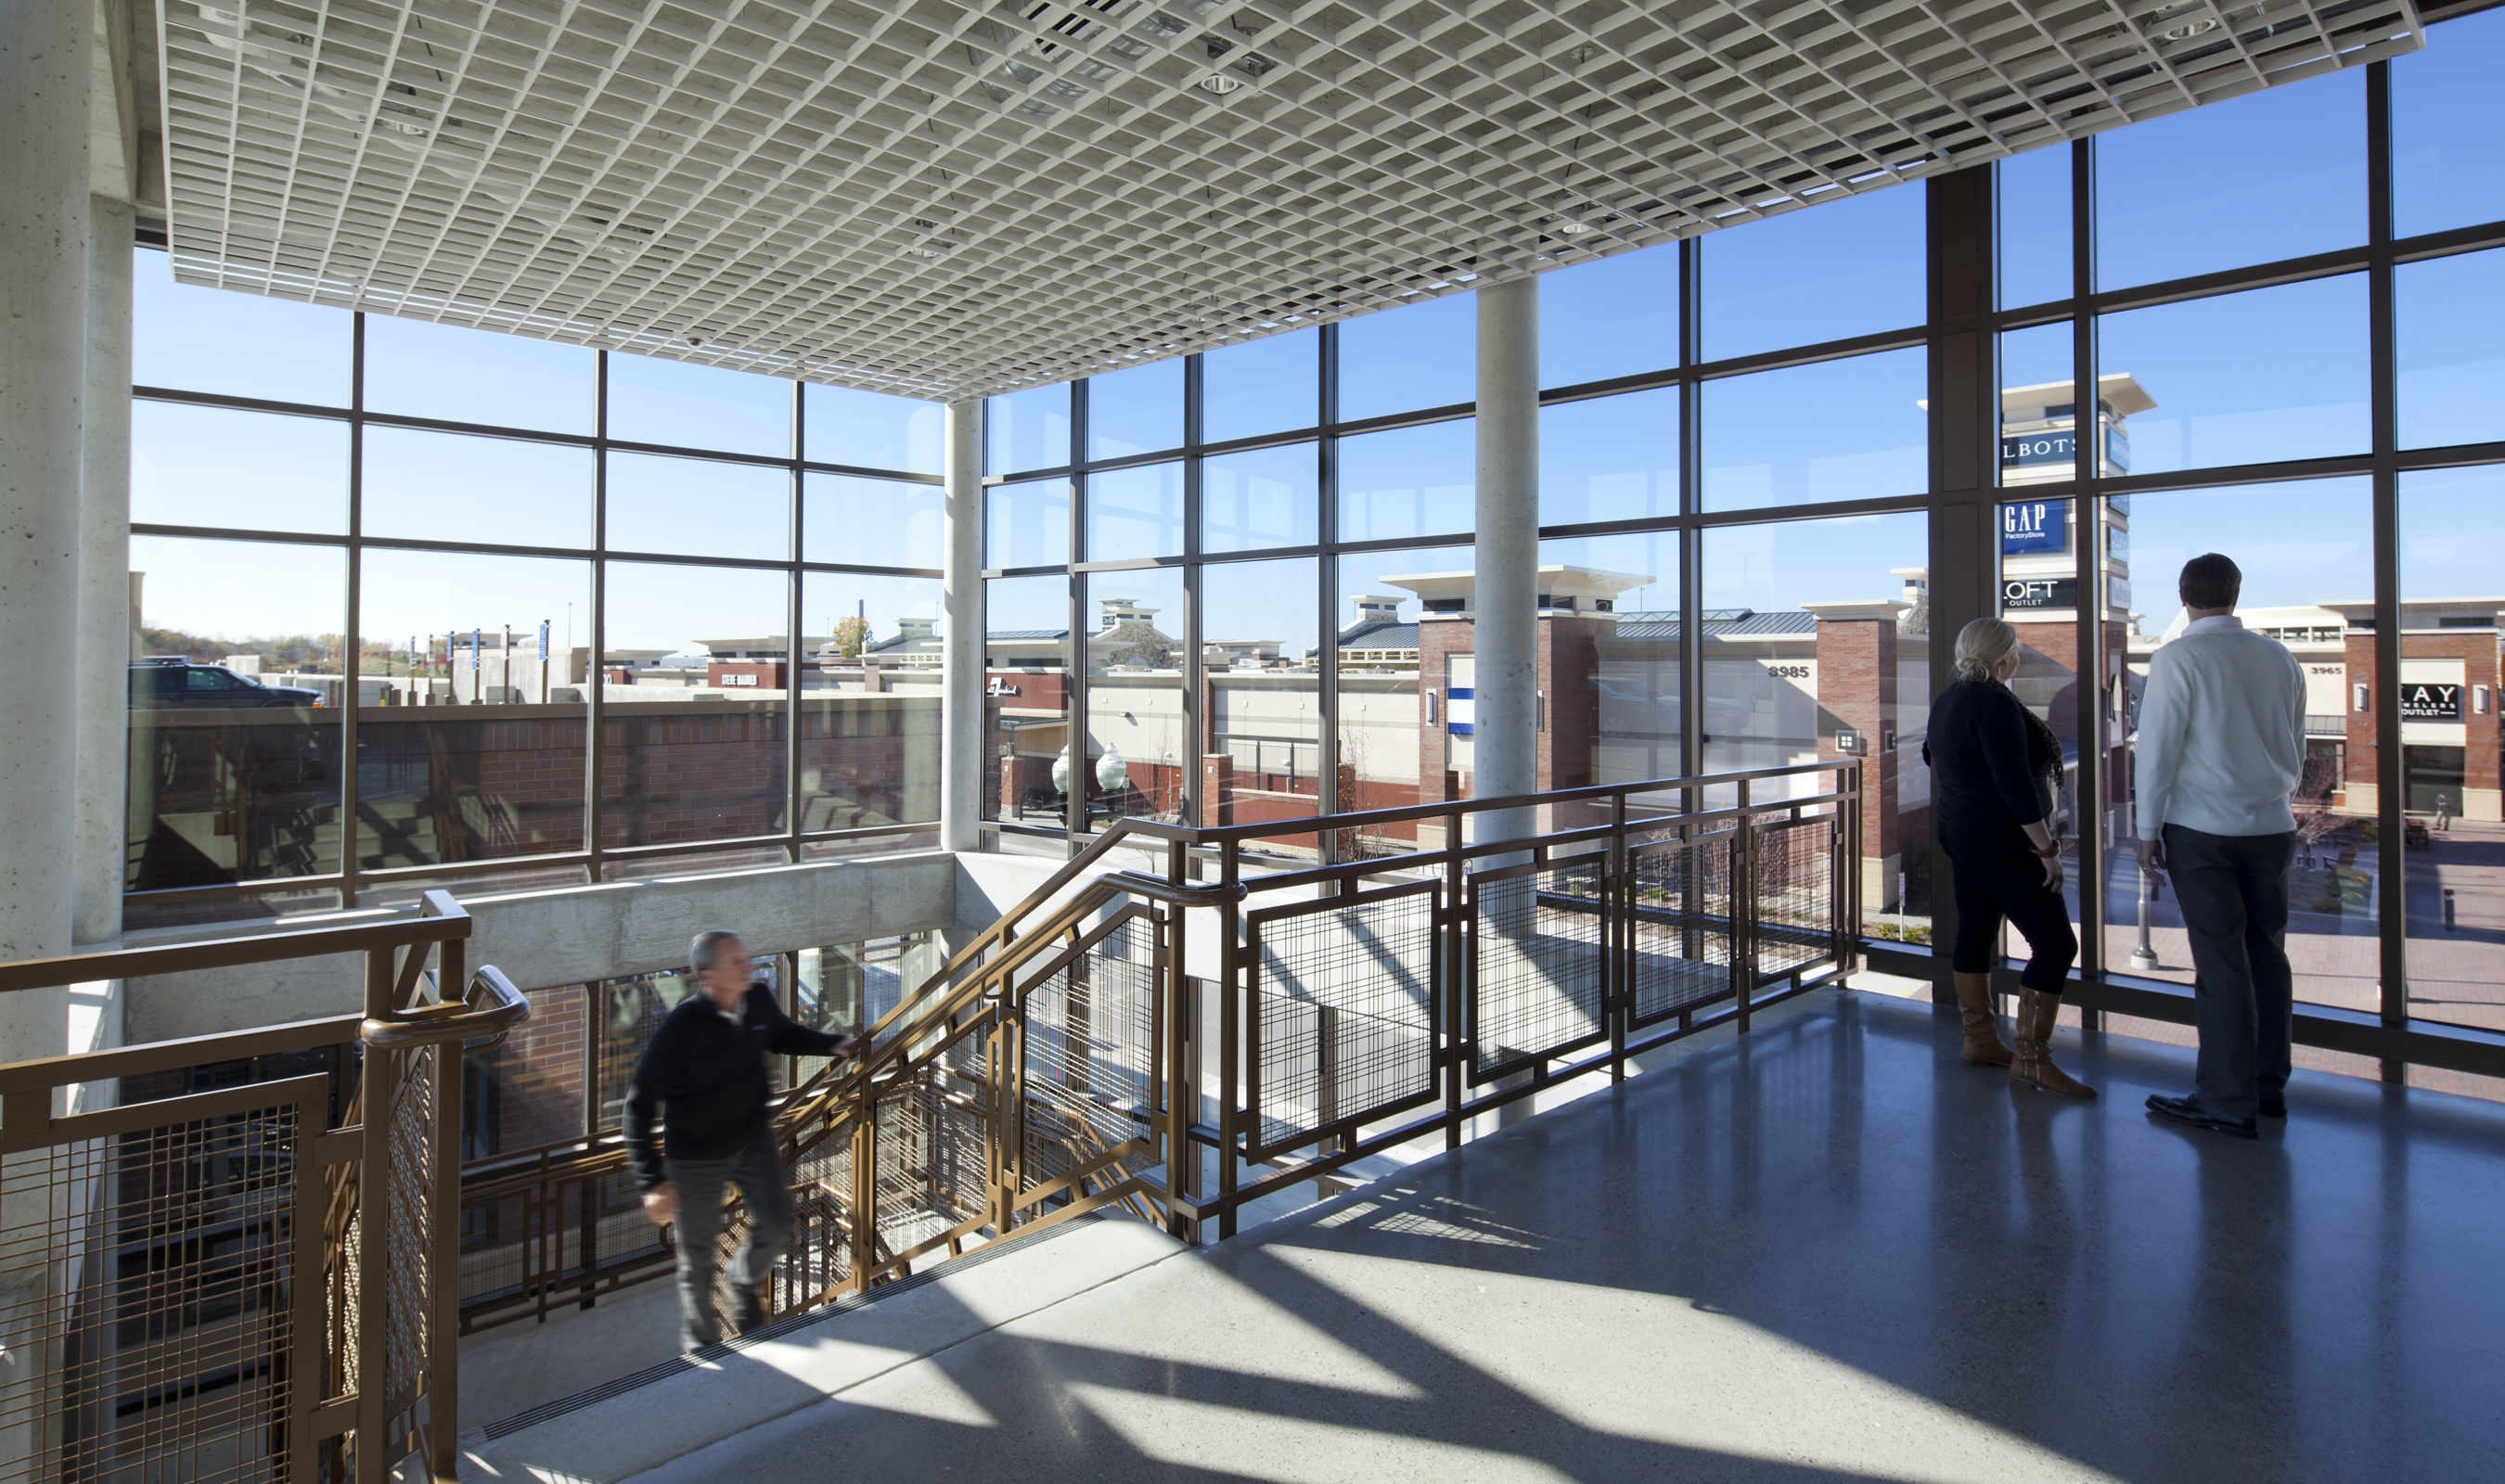 Banker Wire's M44-2 is utilized as the railing infill panels on the interior stairs of the parking garage.